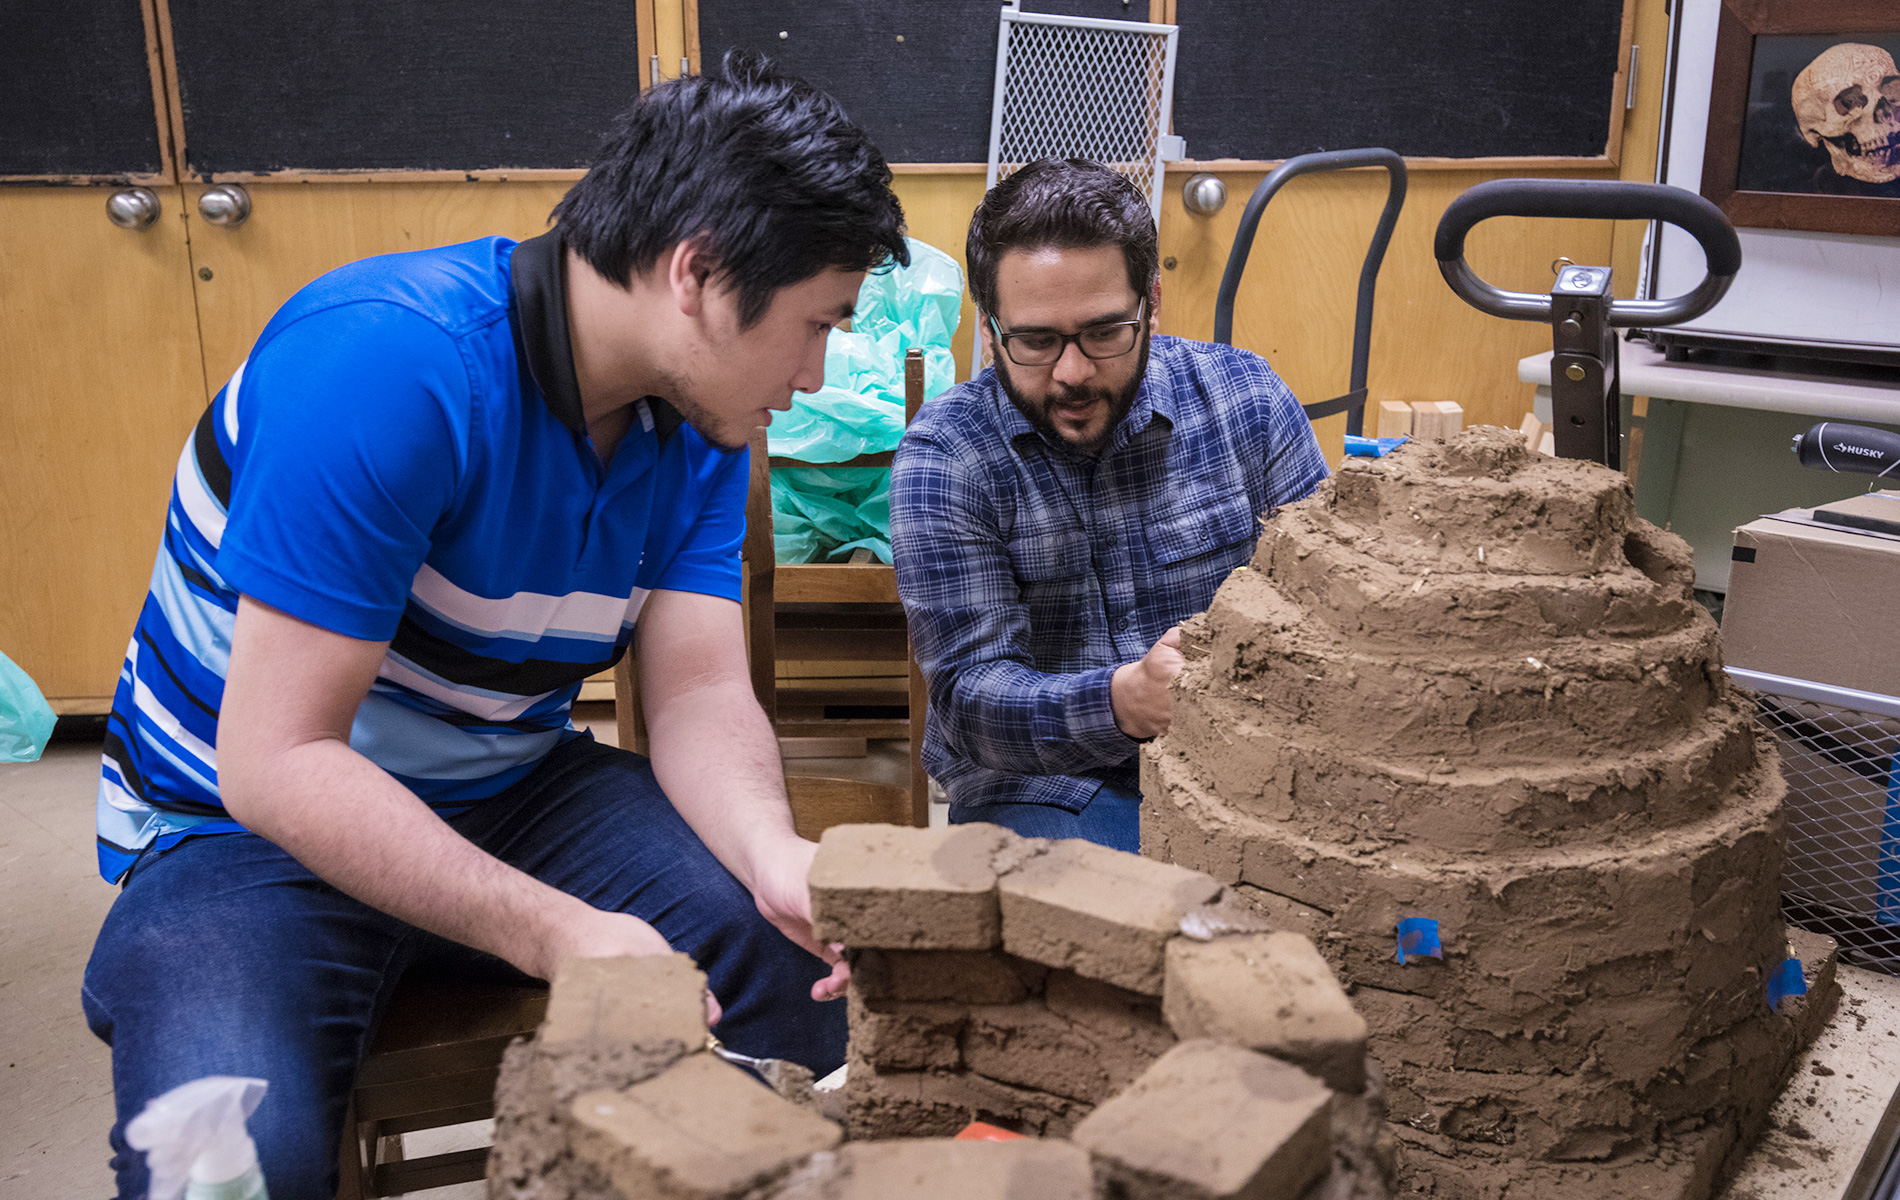 Two students work on an oven made of adobe bricks